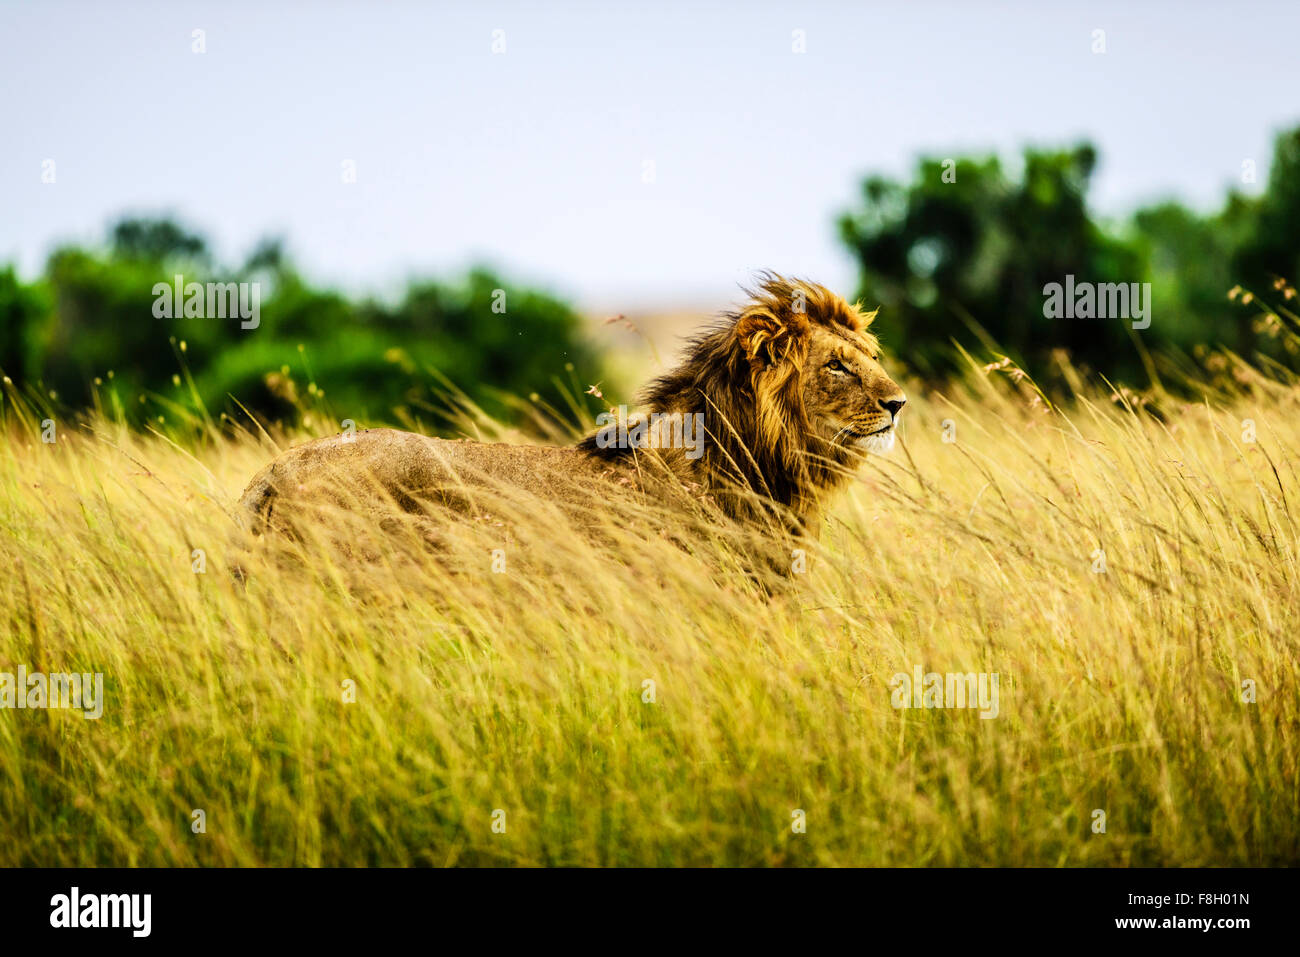 Lion standing in tall grass - Stock Image